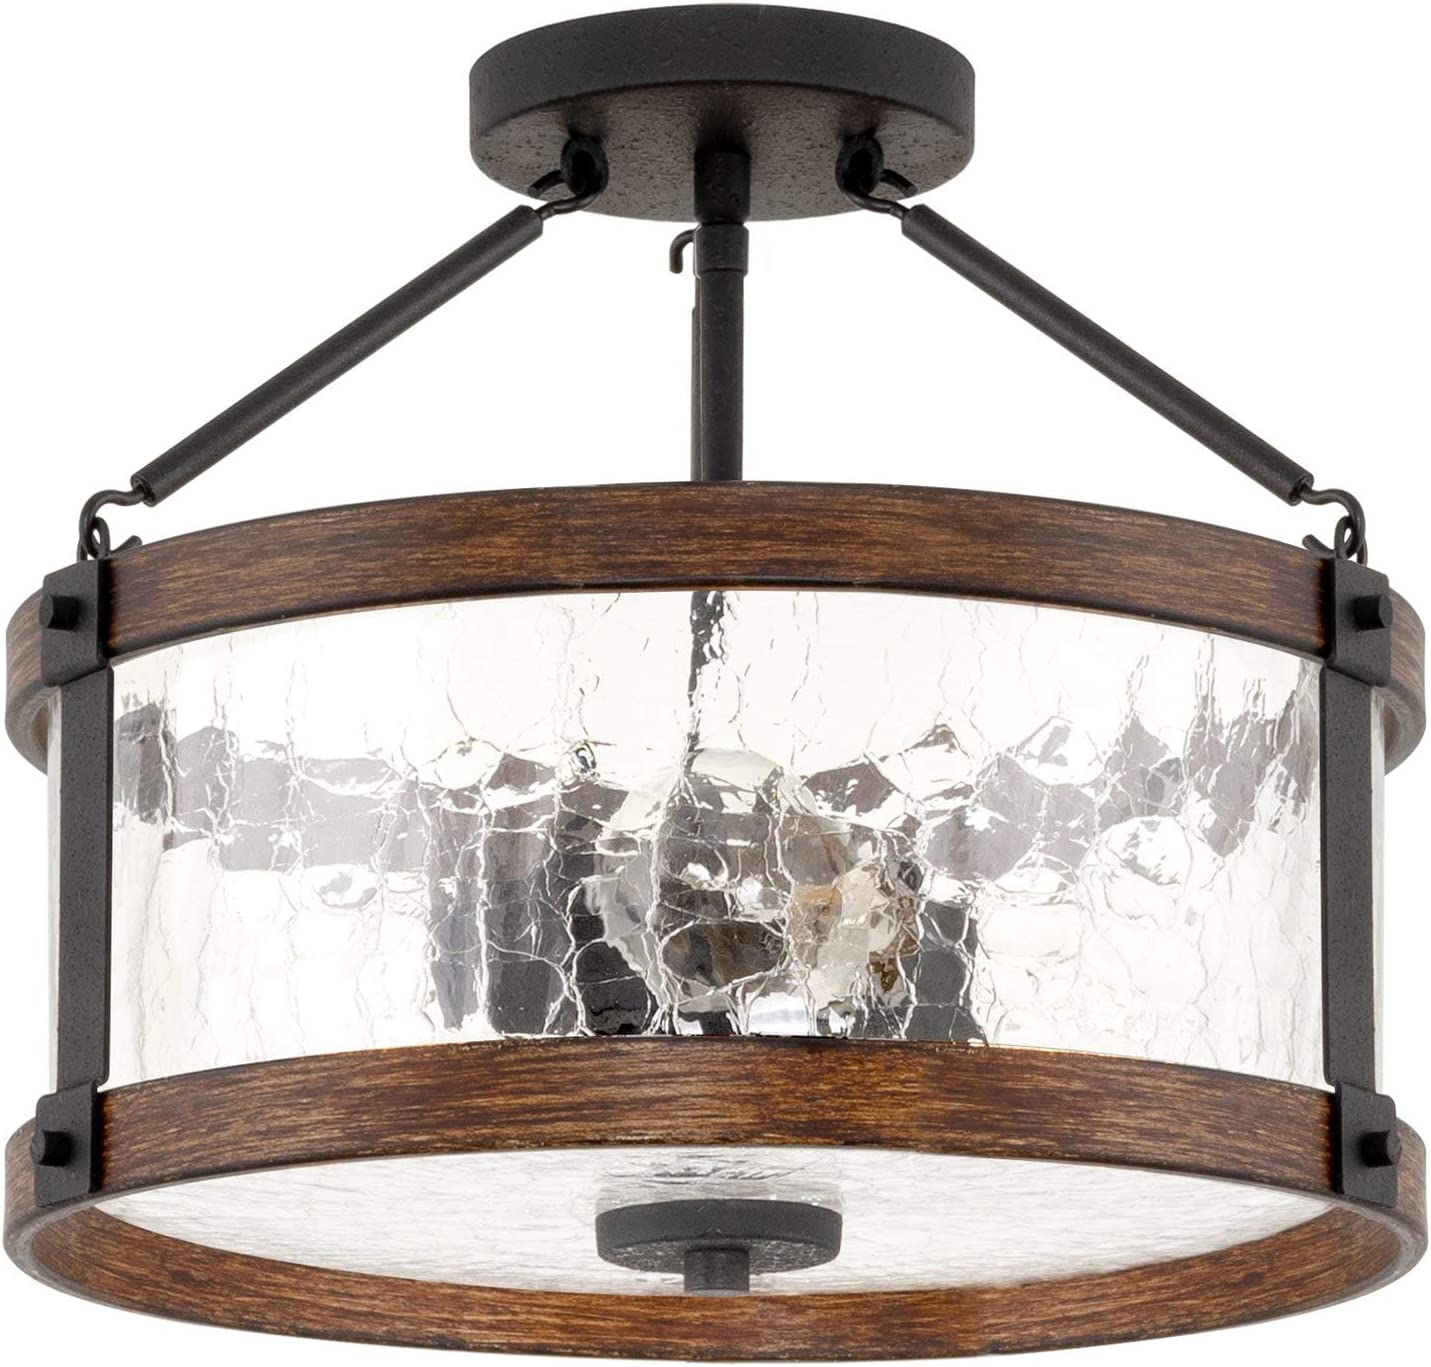 "Kira Home Hadley 14"" 3-Light Modern Farmhouse Semi-Flush Mount Ceiling Light Fixture + Crackled Glass Shade, Textured Black + Wood Style Walnut Finish"